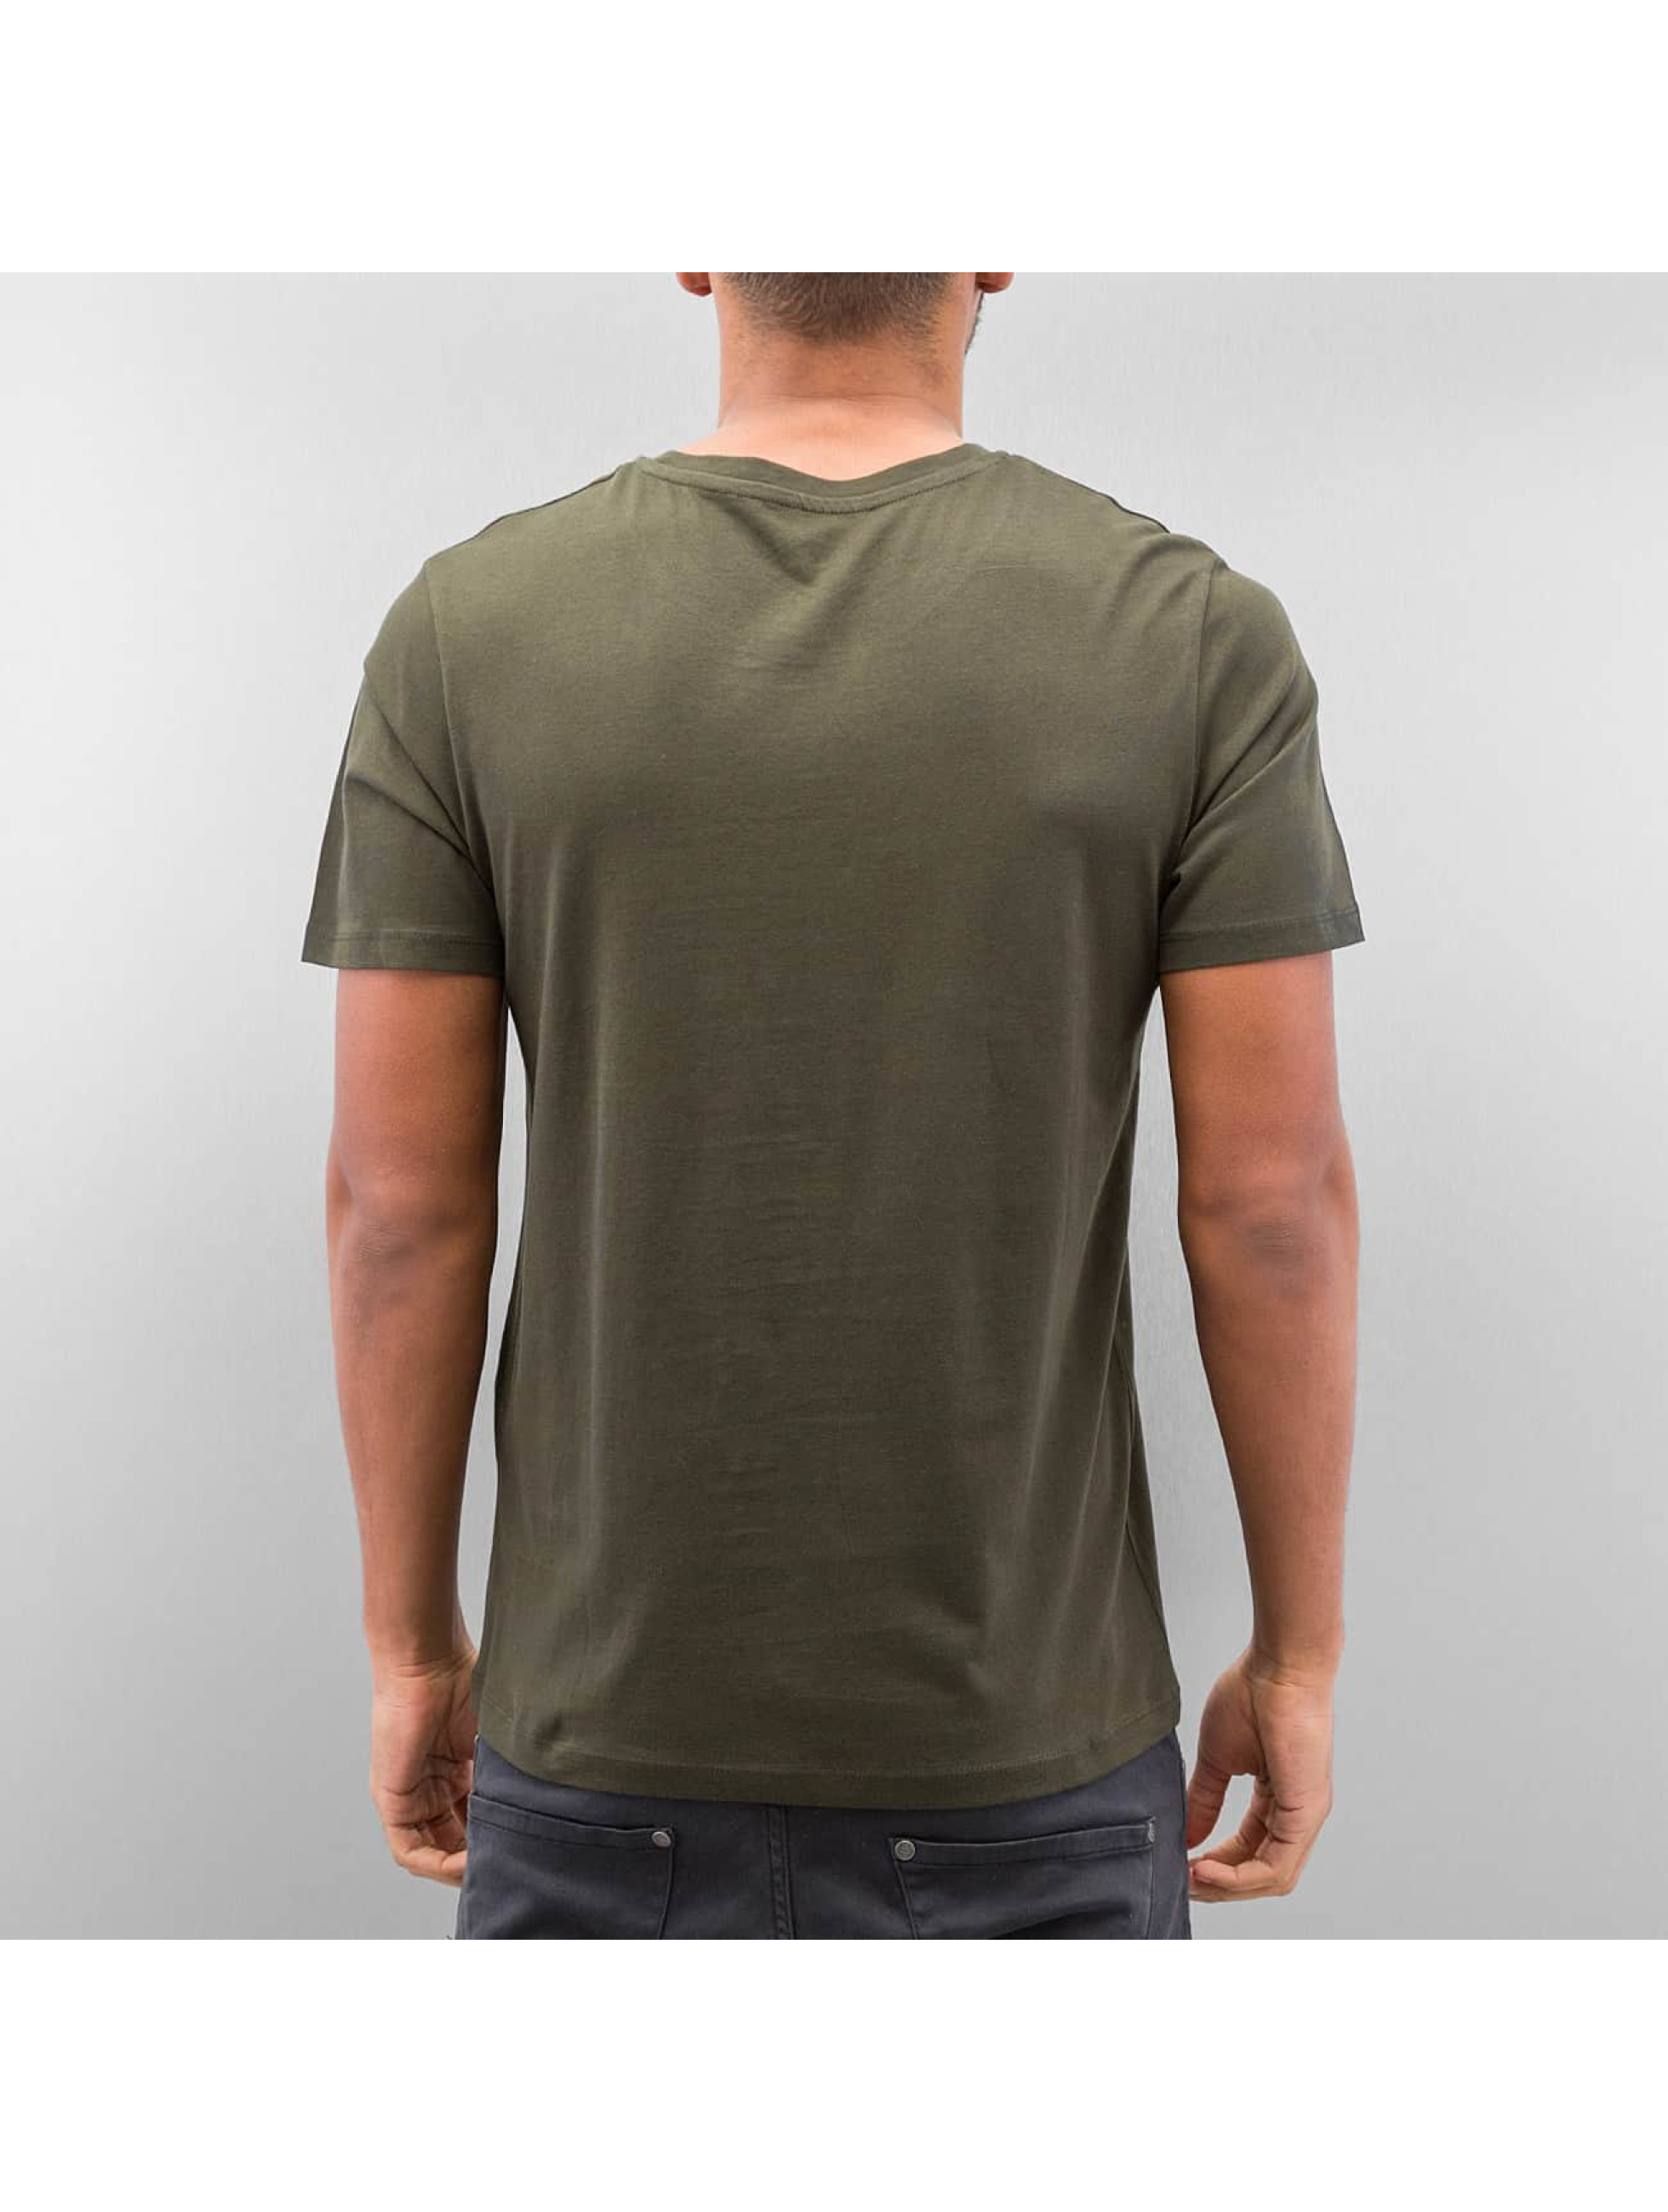 Jack & Jones T-Shirt jjcoSystem olive